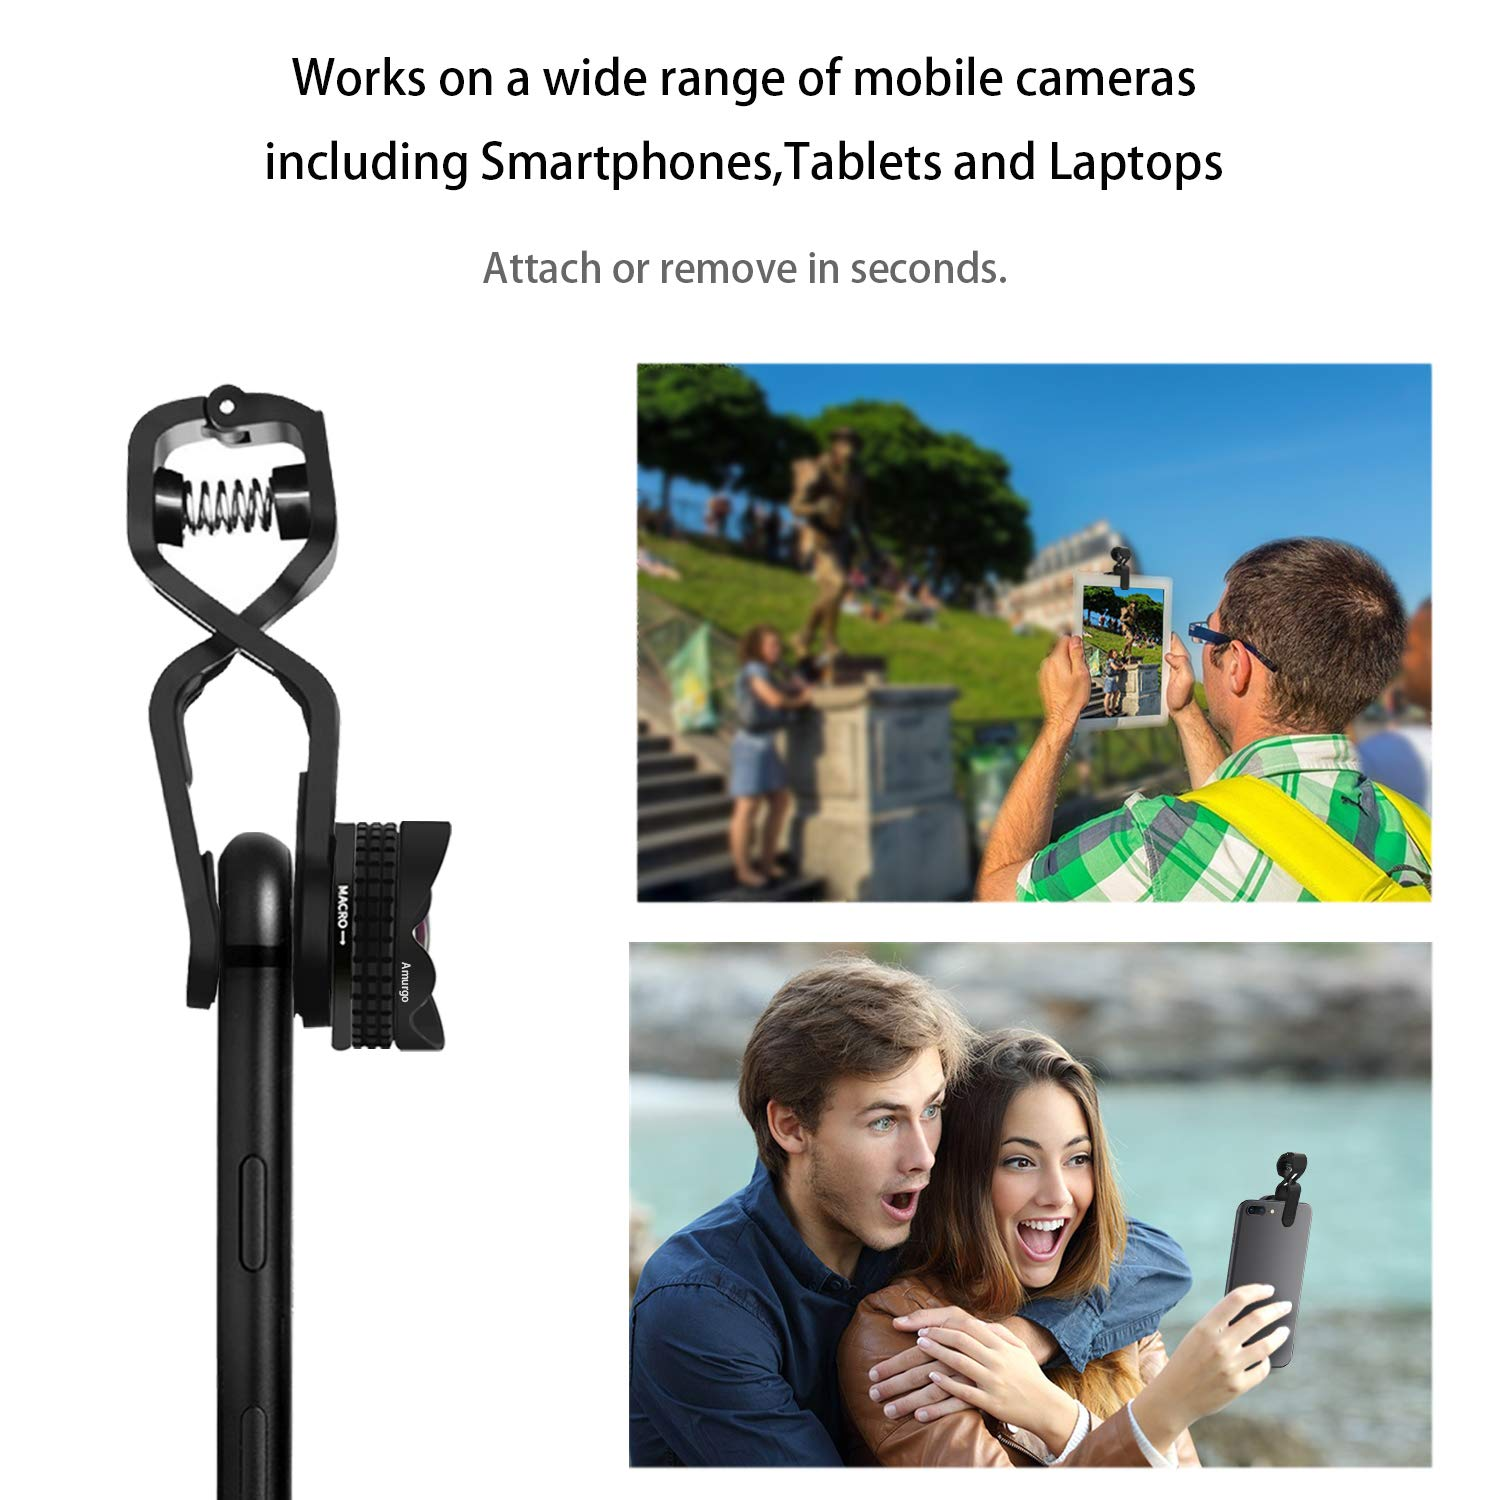 Camera Lens Kit,4K HD Super Wide Angle Lens,Macro Lens,Phone Camera Lens,Clip-On Cellphone Lens for iPhone iPad and Most Smartphones (Black)